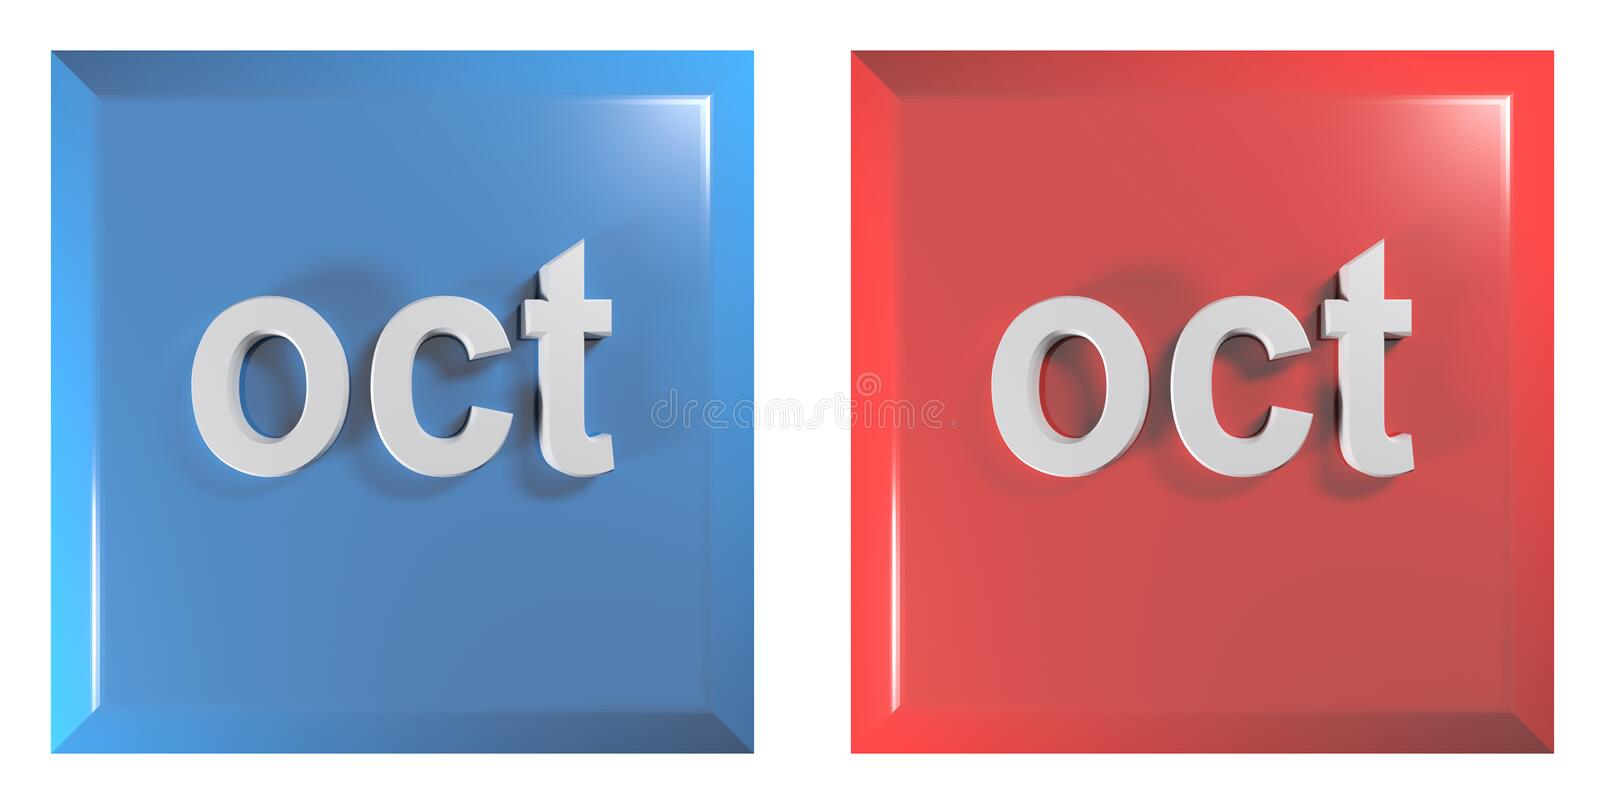 Blue and red couple of square push buttons OCTOBER - 3D rendering illustration. A couple of square push buttons, blue and red, isolated on white background, with stock illustration